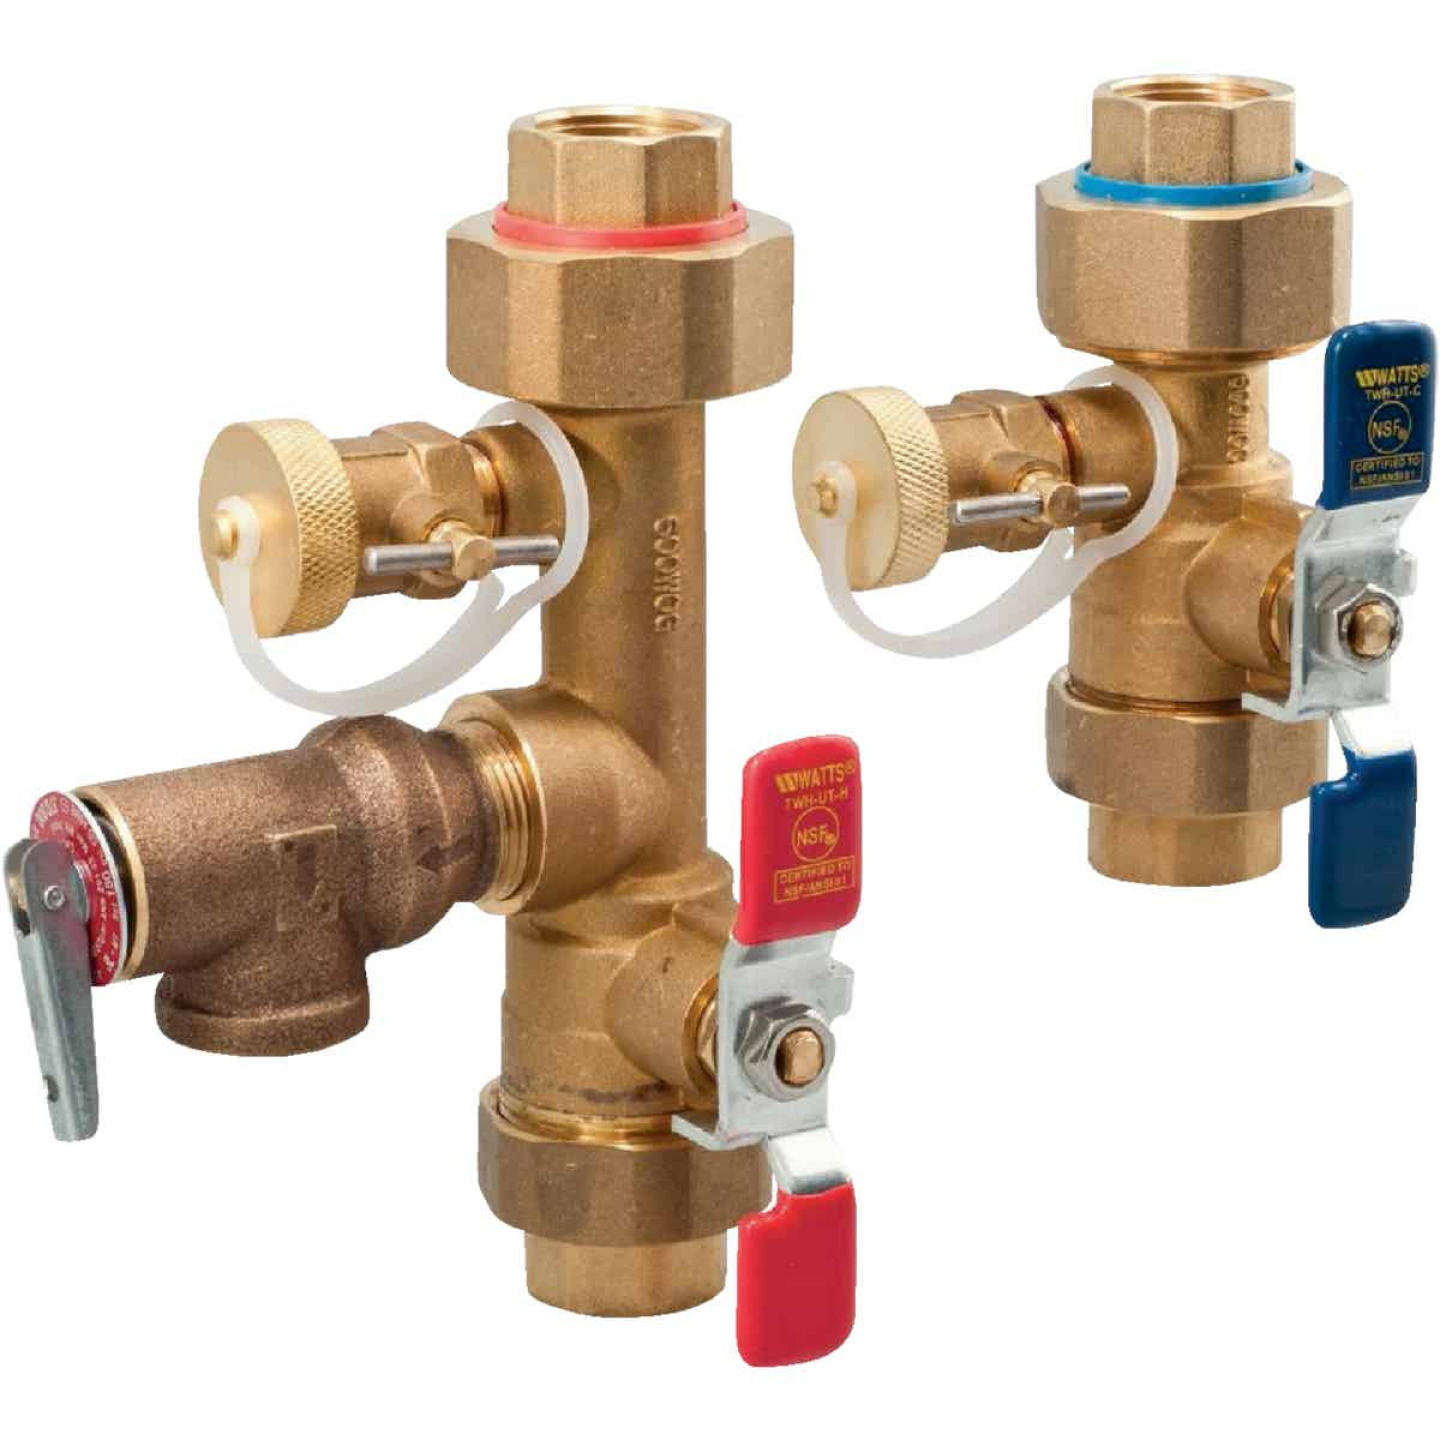 Watts 2-Piece 3/4 In. Lead-Free Brass Tankless Water Heater Installation Valve Kit Image 1